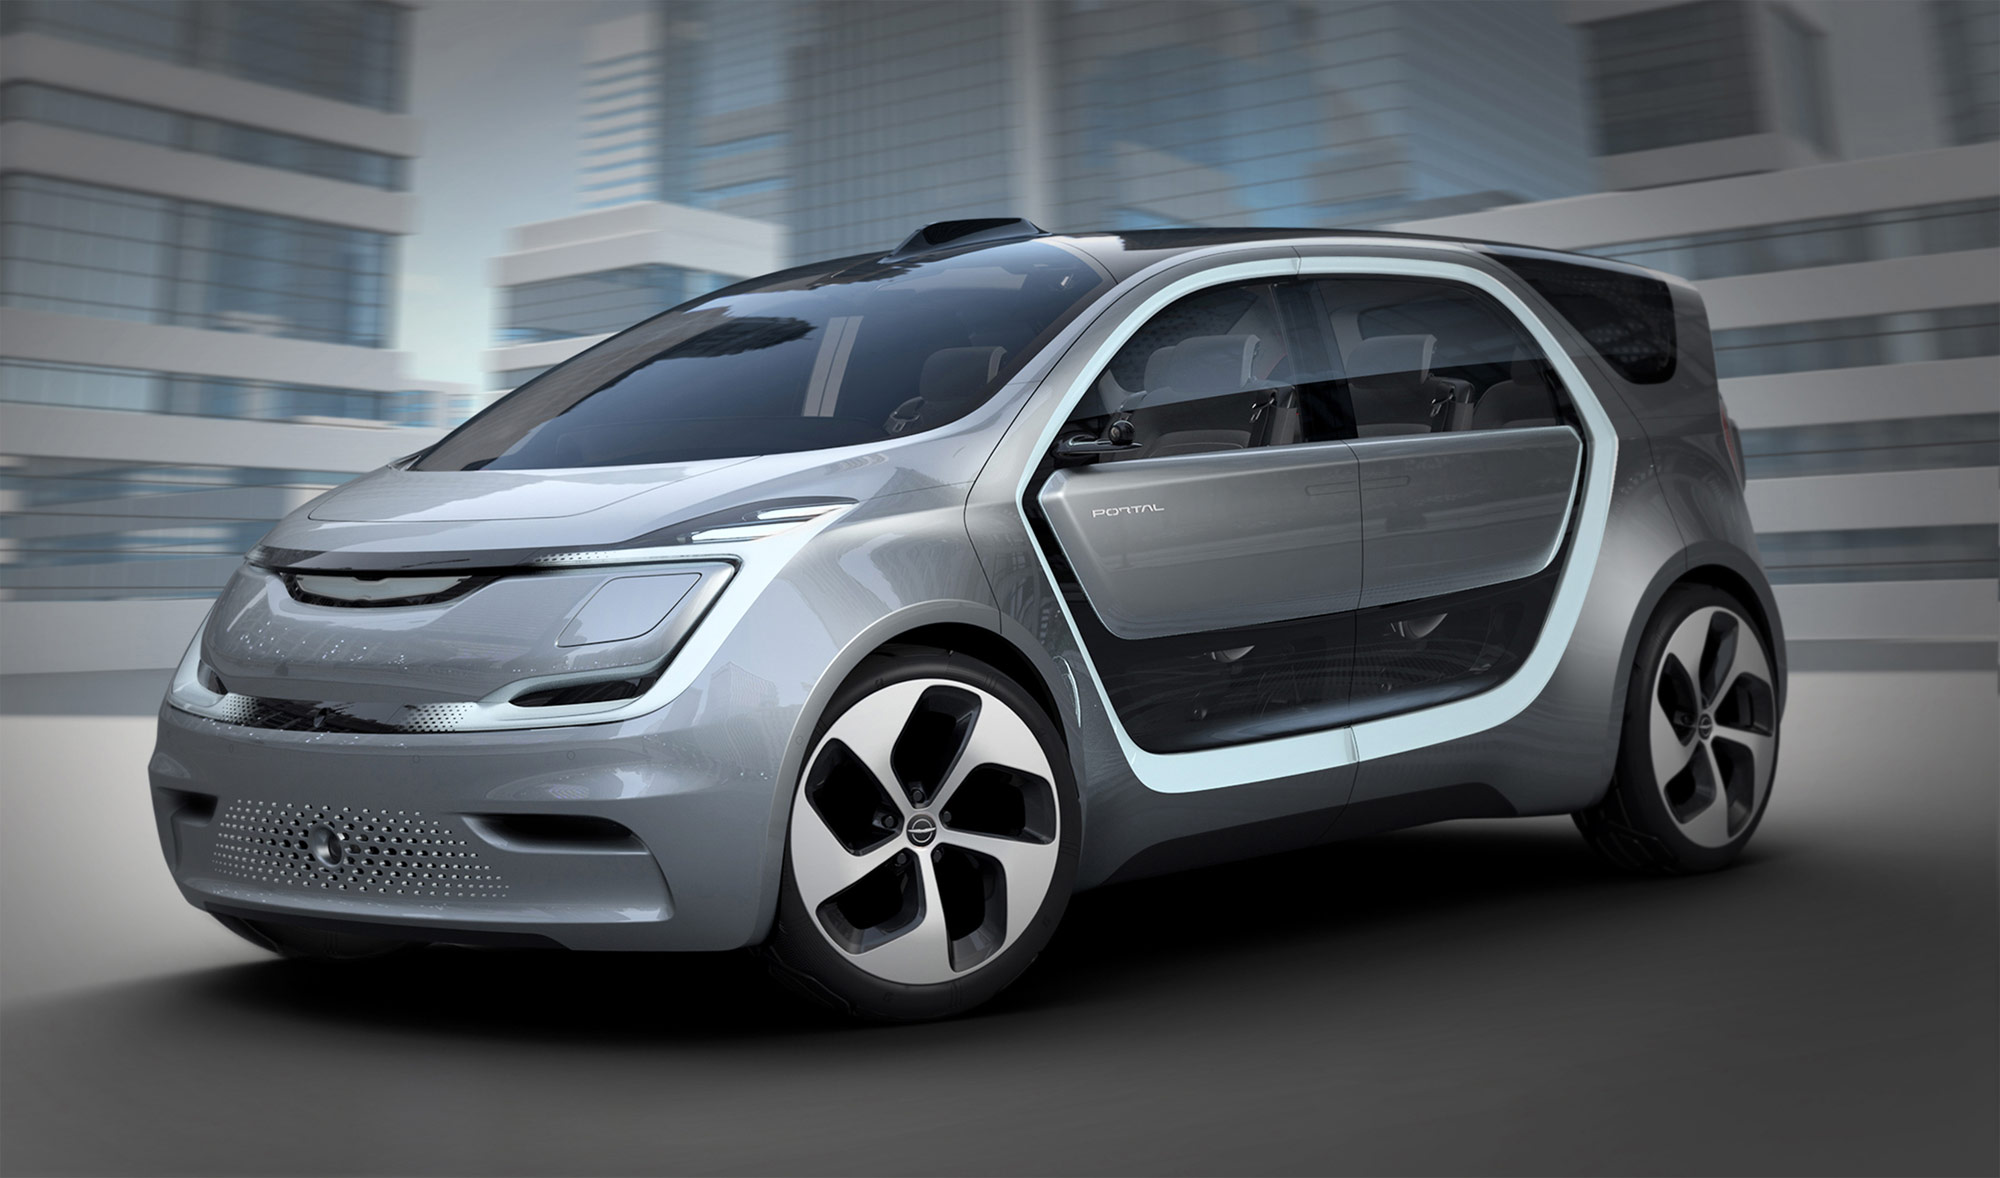 The Chrysler Portal concept